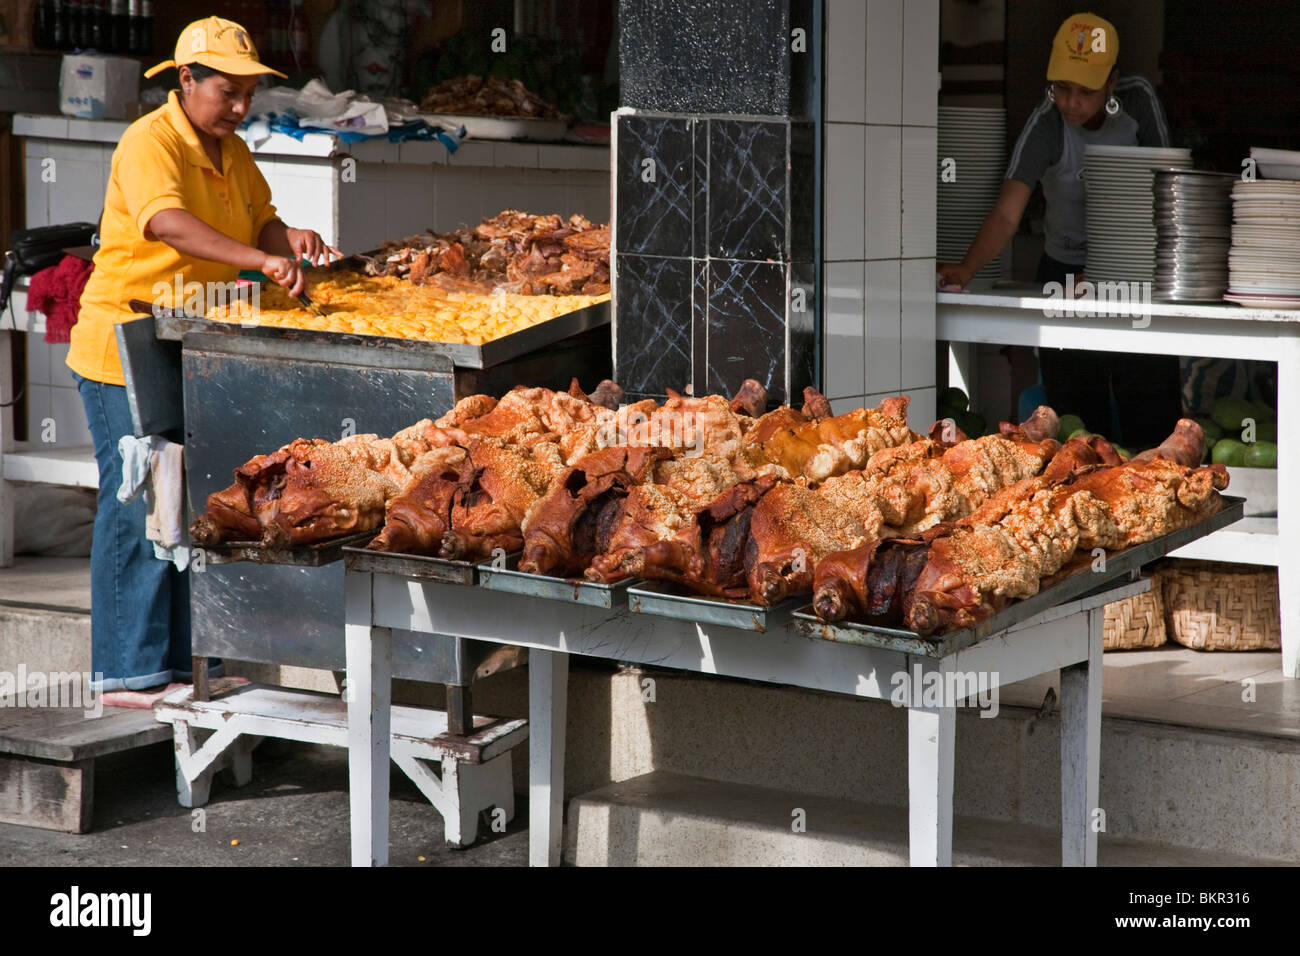 Ecuador, Roast suckling pigs on display at an open-air foodstall at Sangolqui market. - Stock Image